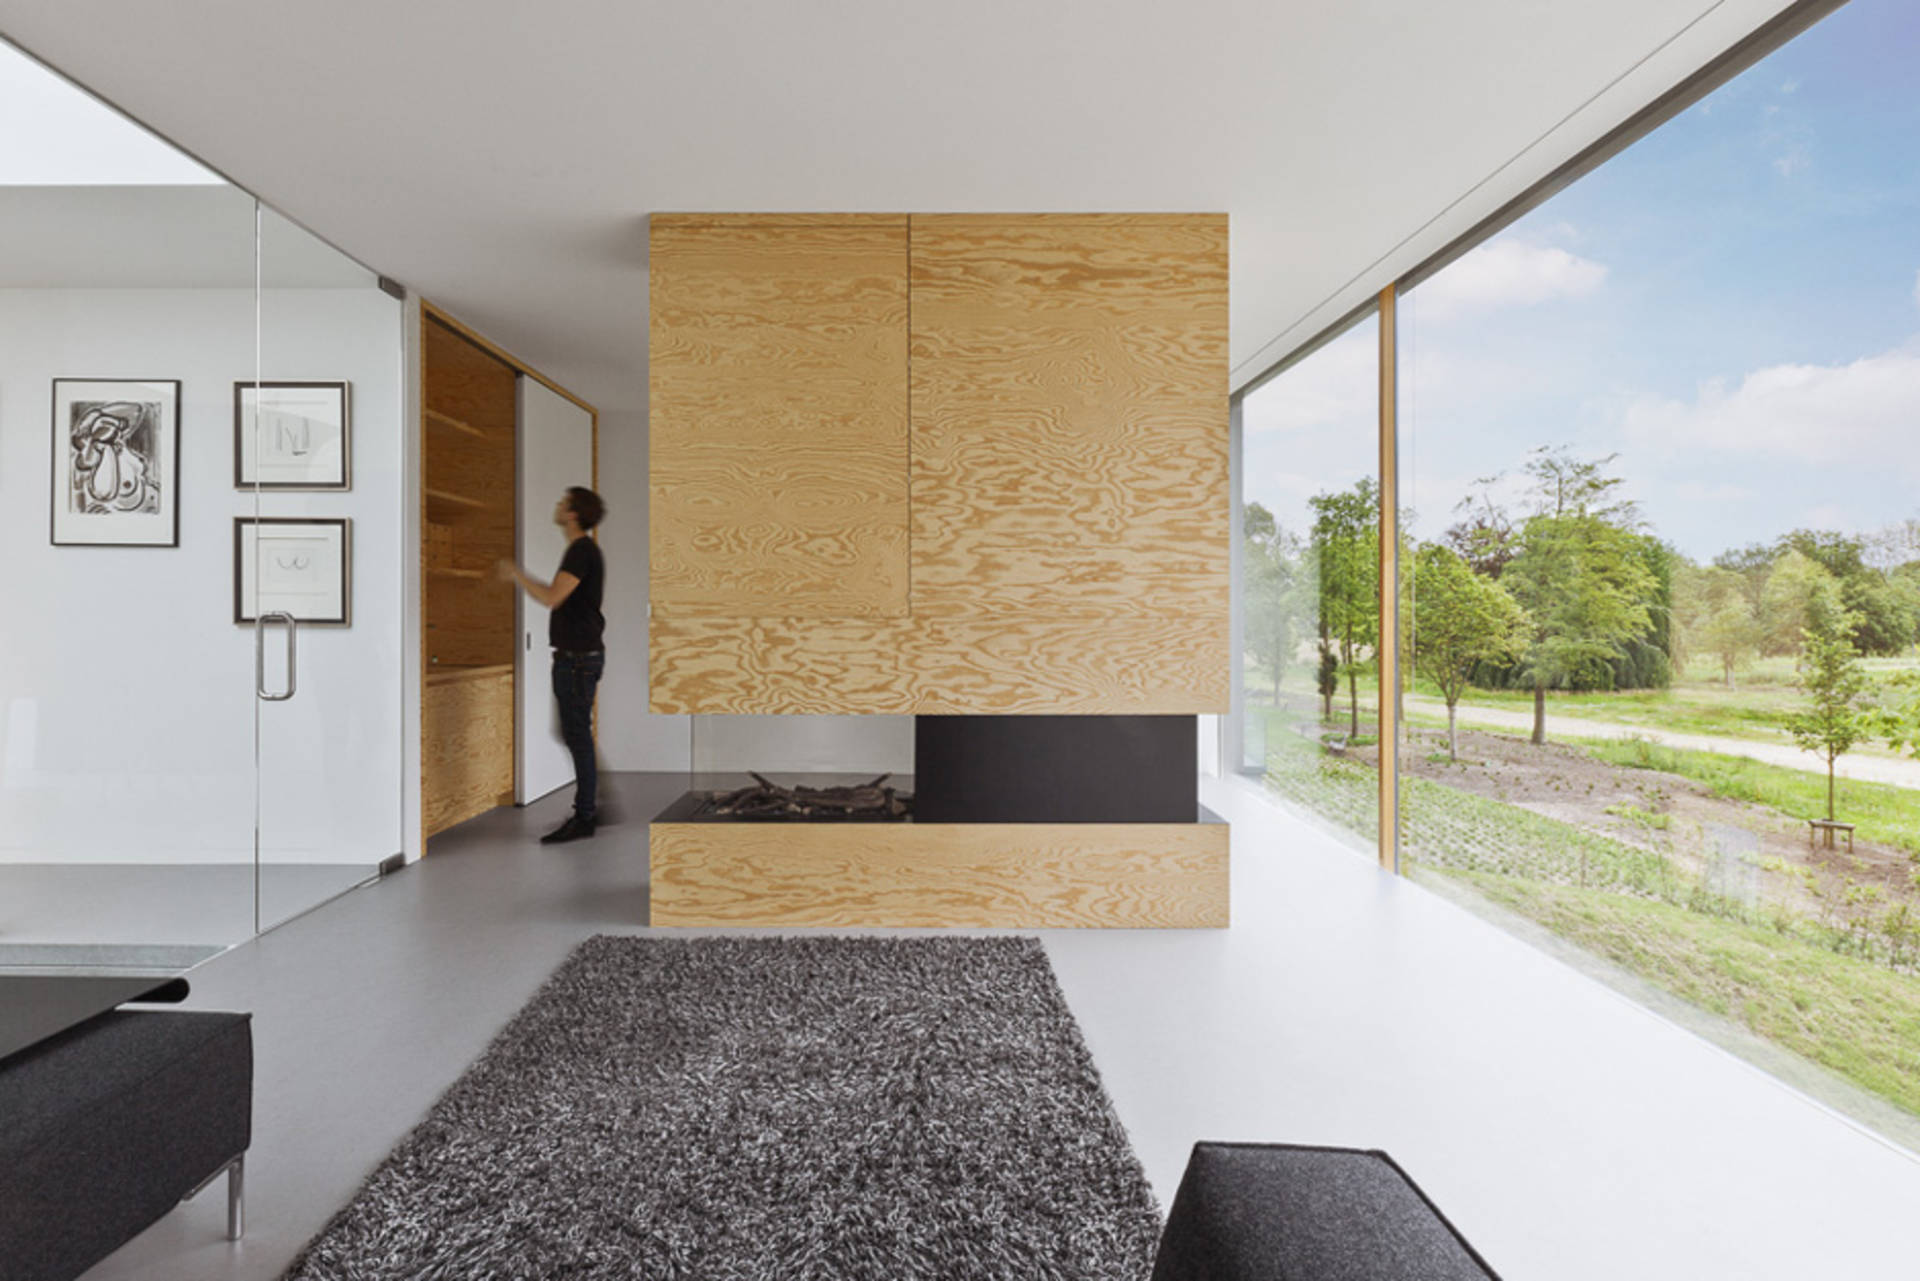 The design of the house in kennemerdeynen dutch national park i29 interior architects